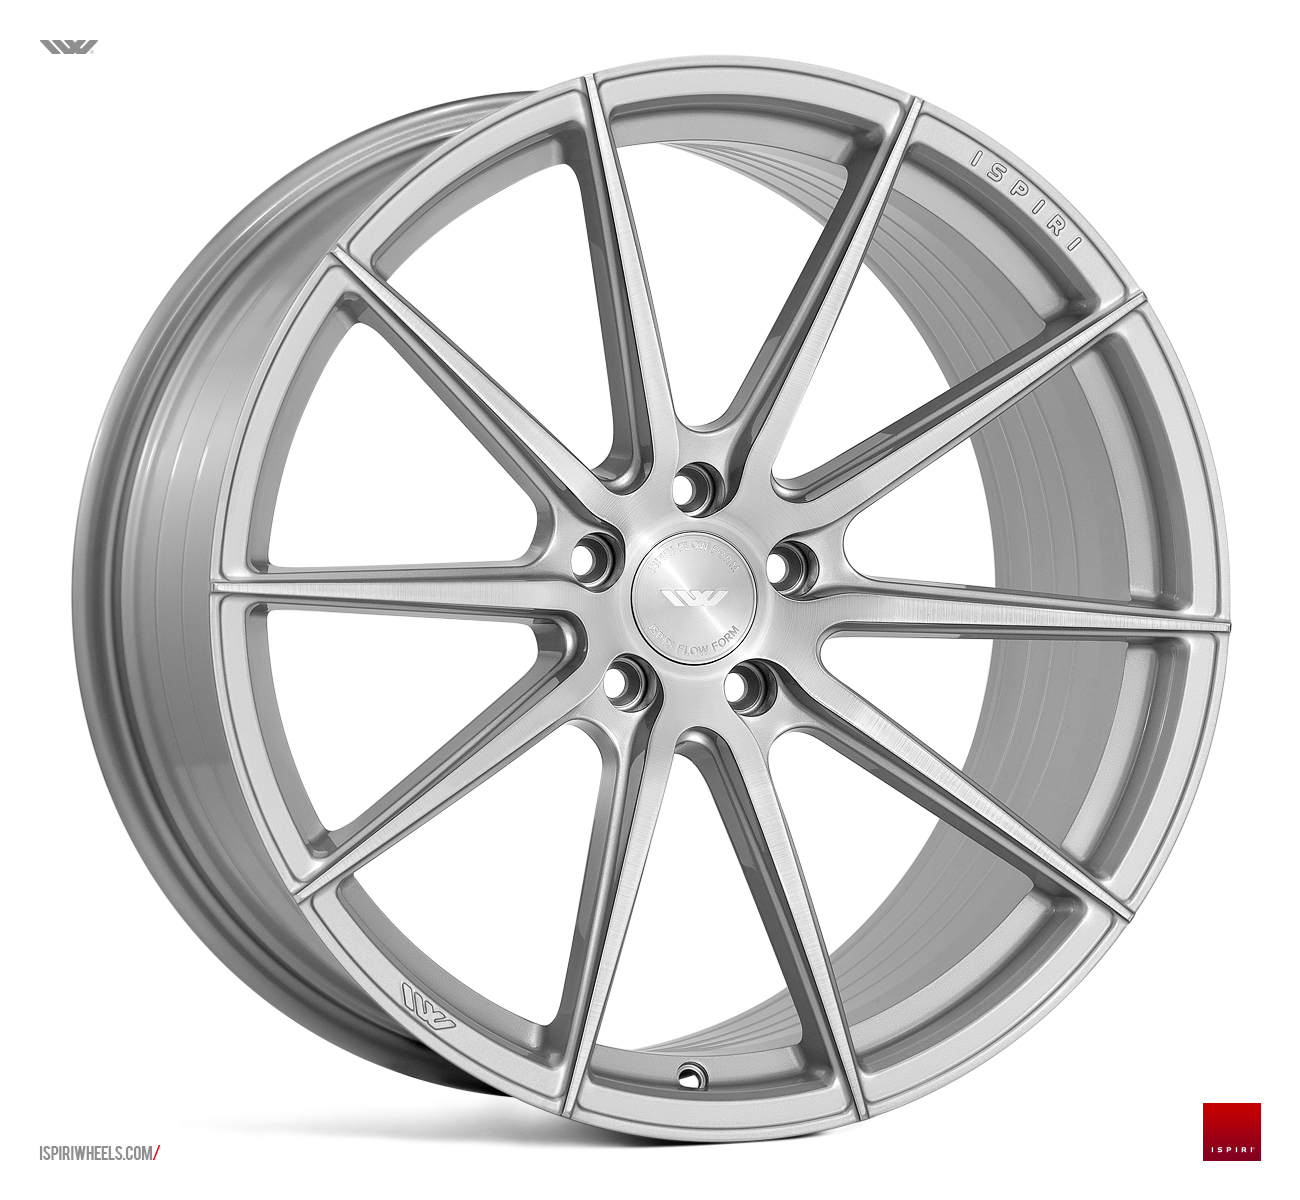 "NEW 19"" ISPIRI FFR1 MULTI-SPOKE ALLOY WHEELS IN PURE SILVER WITH BRUSHED POLISH FACE, DEEPER CONCAVE 10"" REARS"